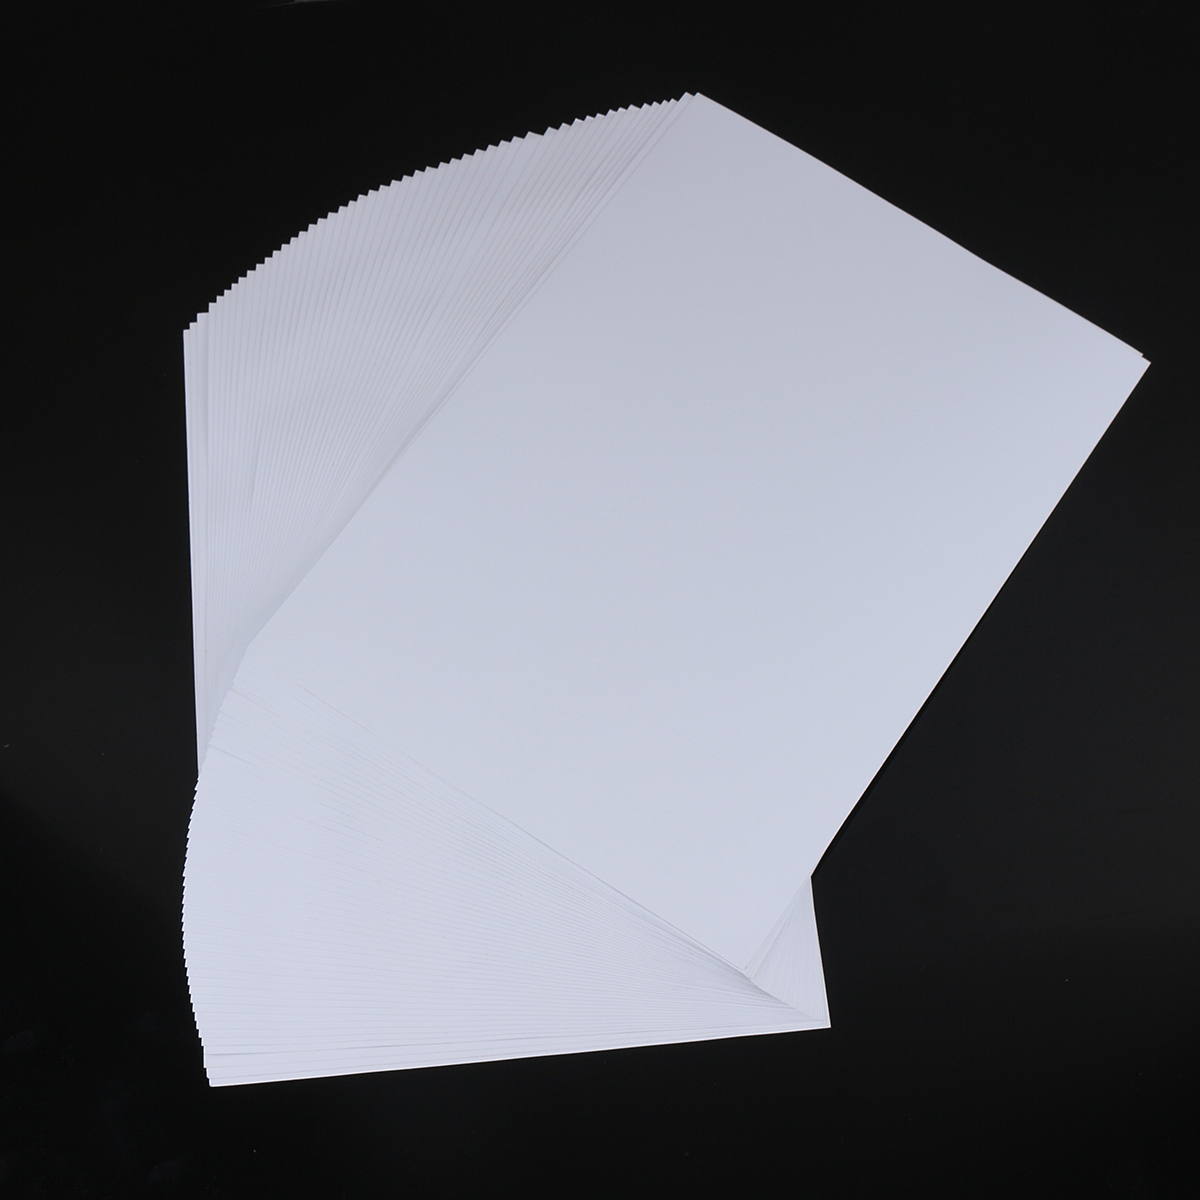 50pcs Waterproof A4 Self Adhesive Glossy Paper Sticker For